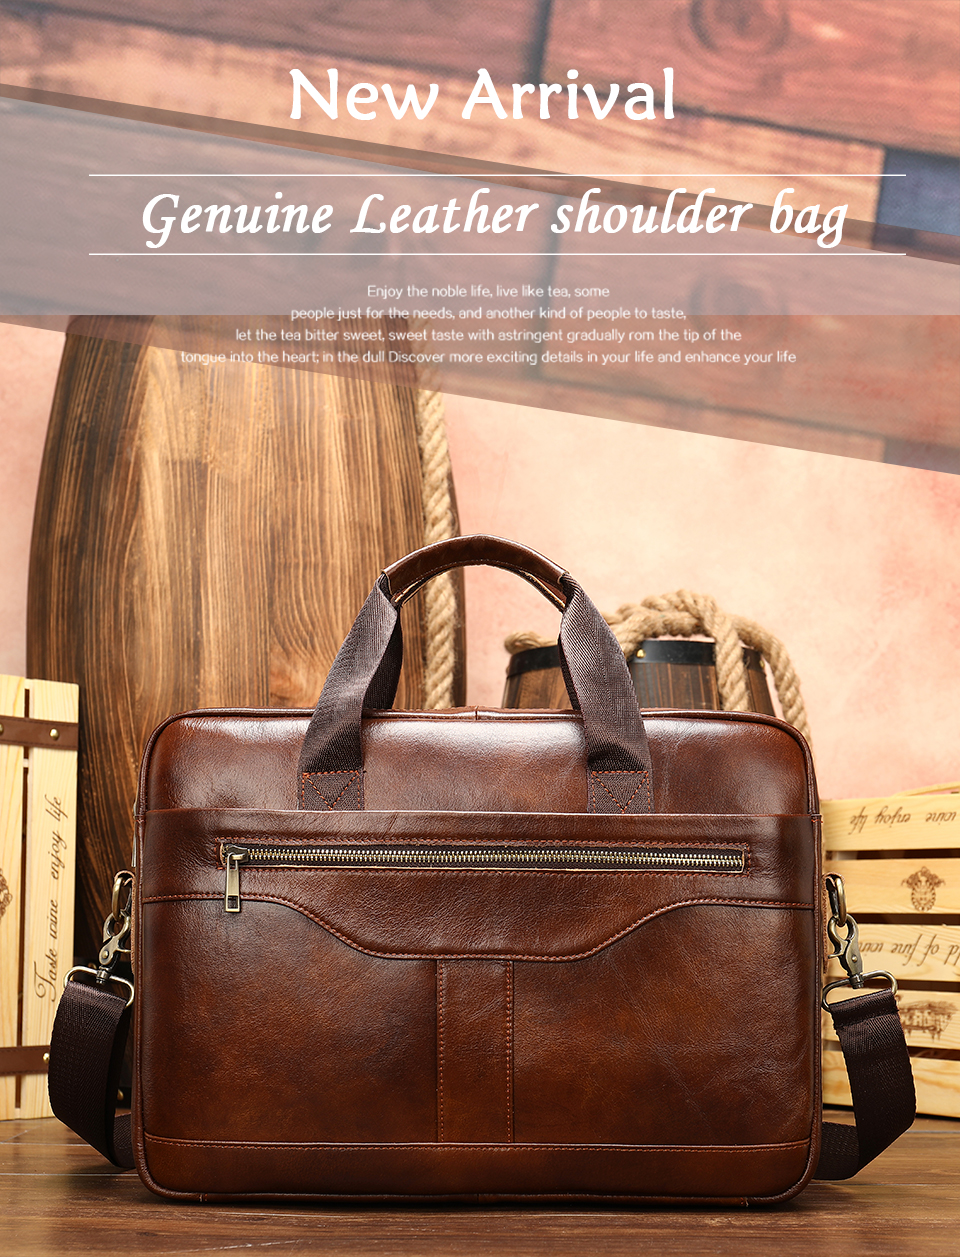 HTB1Gbj4XUGF3KVjSZFmq6zqPXXan WESTAL Men's Briefcase Men's Bag Genuine Leather Laptop Bag Leather Computer/Office Bags for Men Document Briefcases Totes Bags